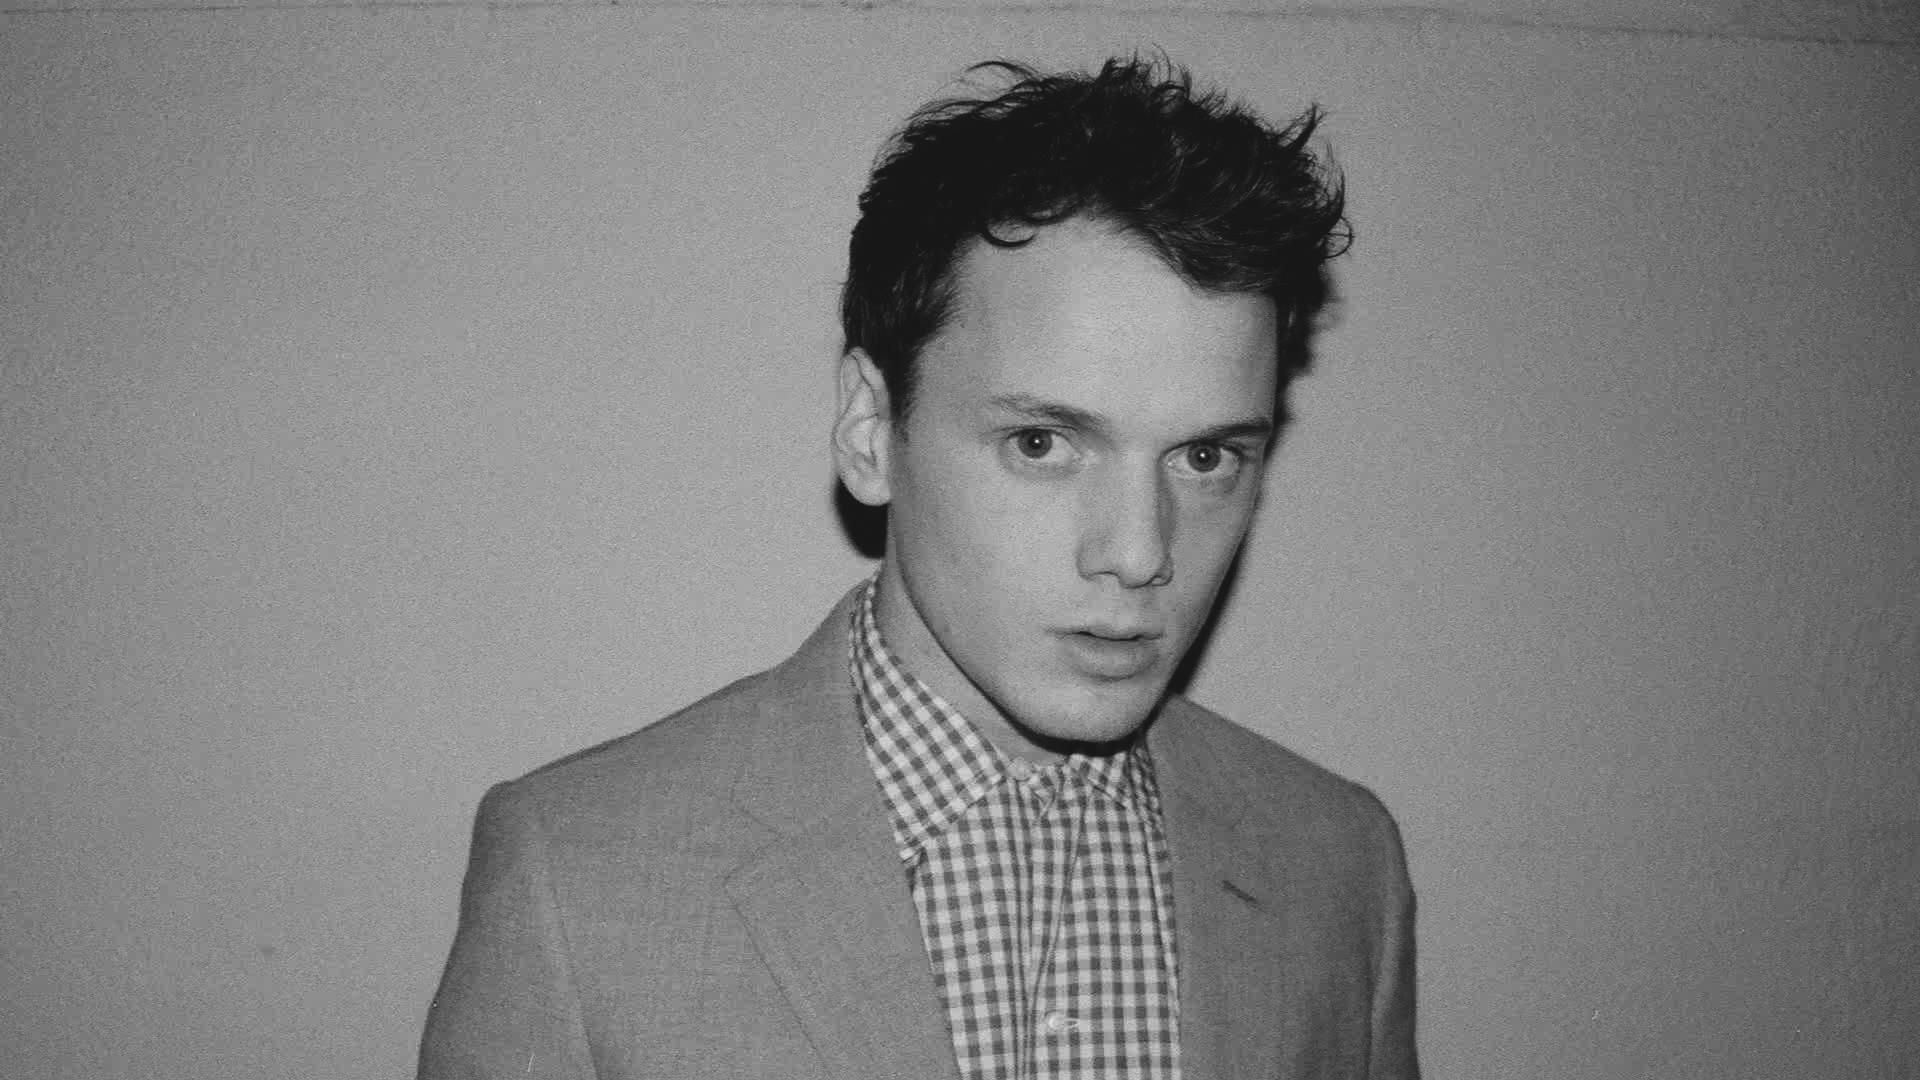 The Trailer For the Anton Yelchin Documentary Is a Heartbreaking Look at the Life of the Late Actor